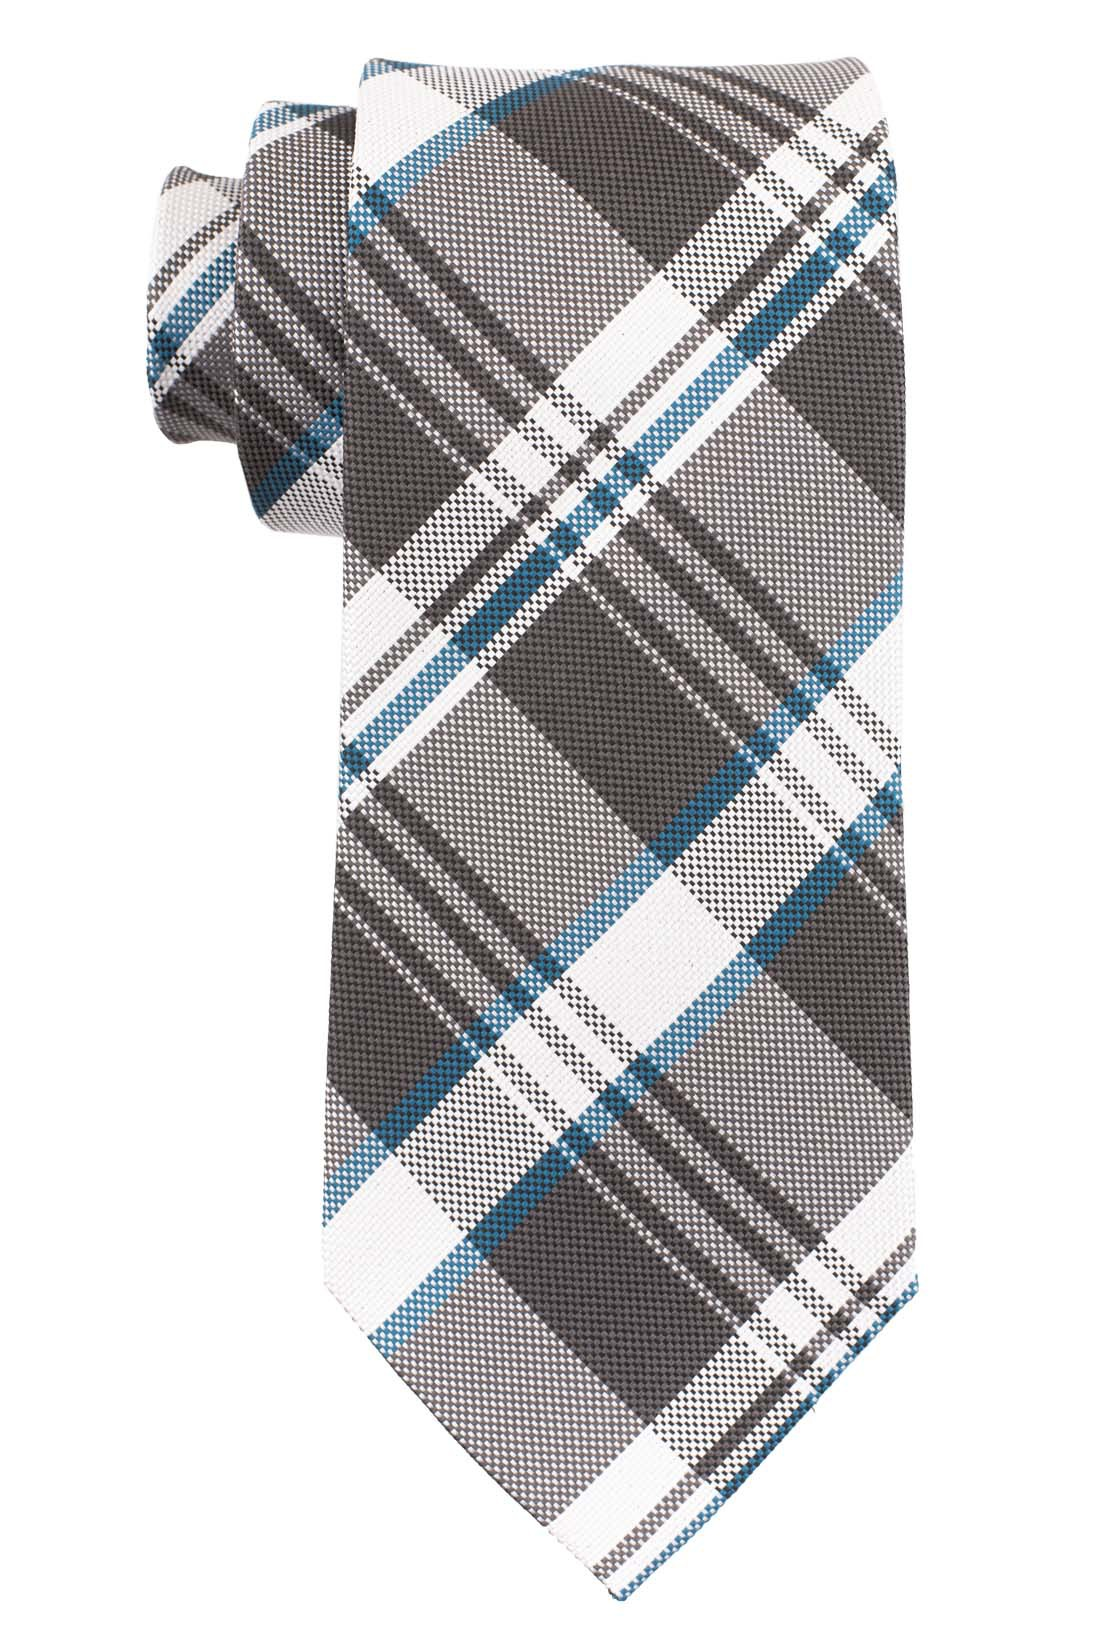 Reprint Plaid Black and Teal 100% Silk necktie